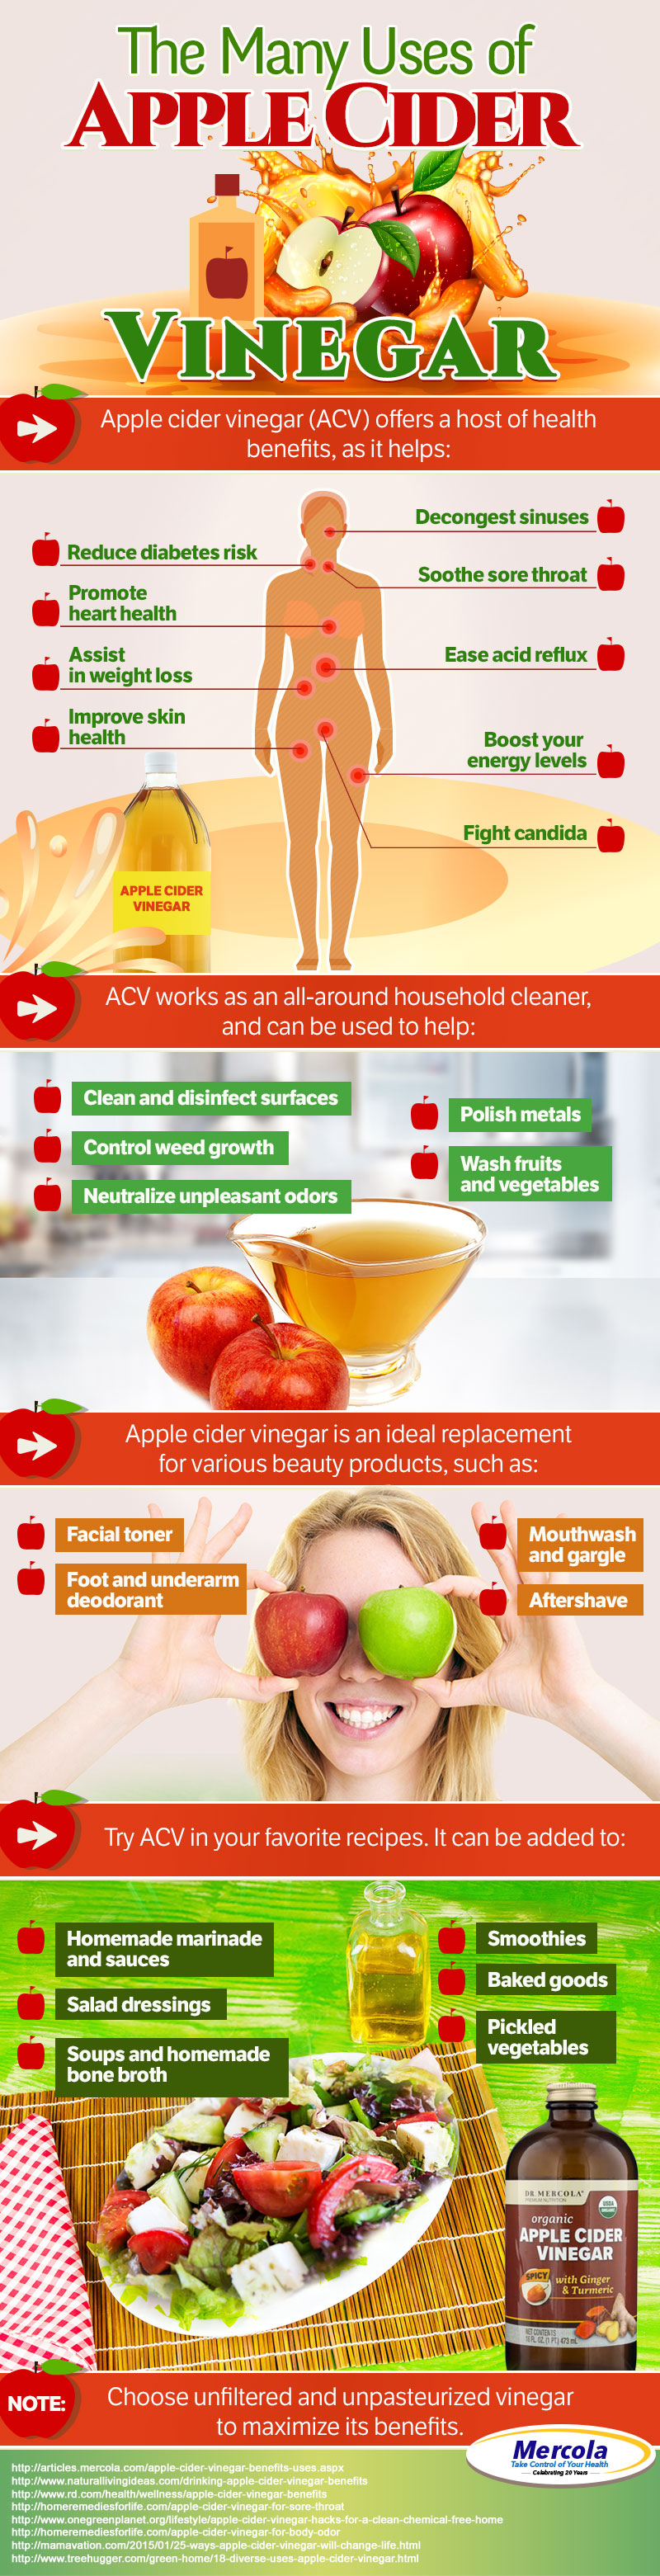 Apple Cider Vinegar Benefits and Uses